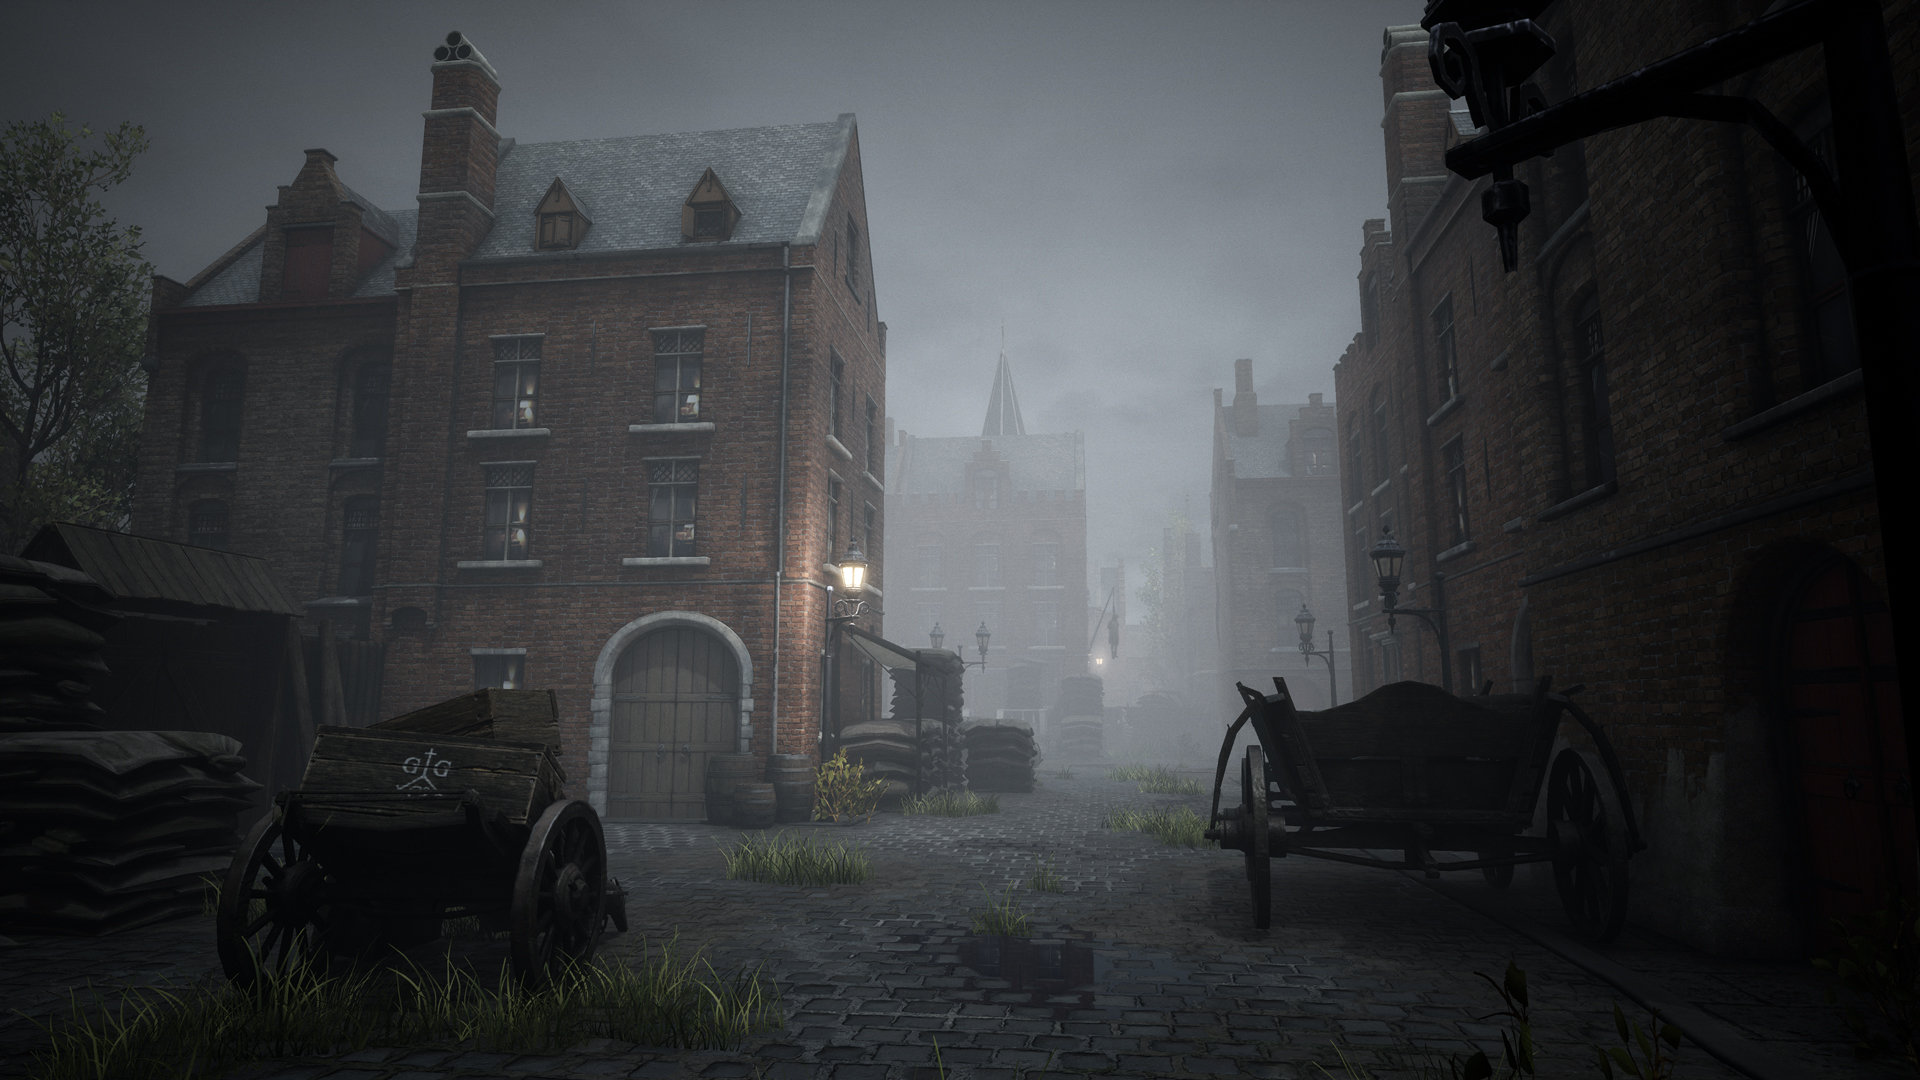 A foggy medieval city in Black Legend.